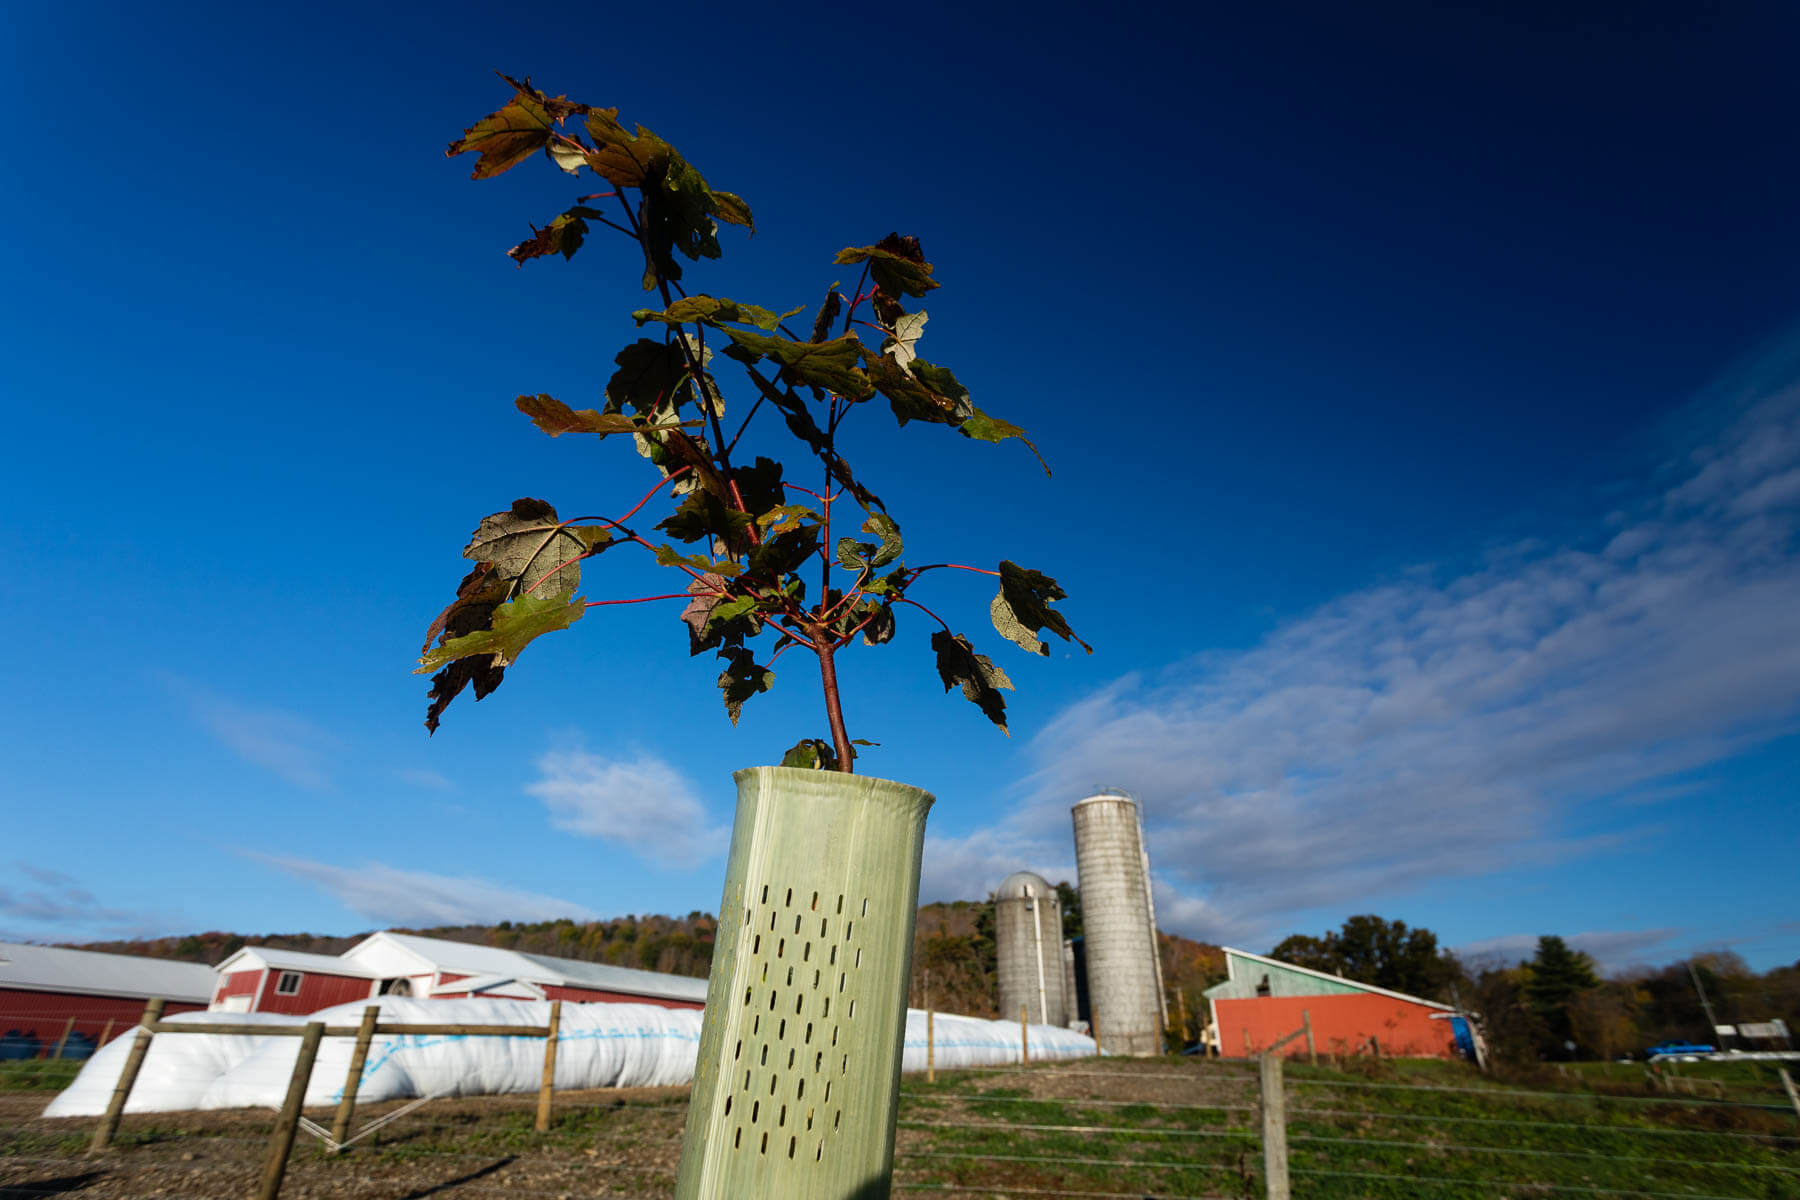 A sapling in front of farm buildings